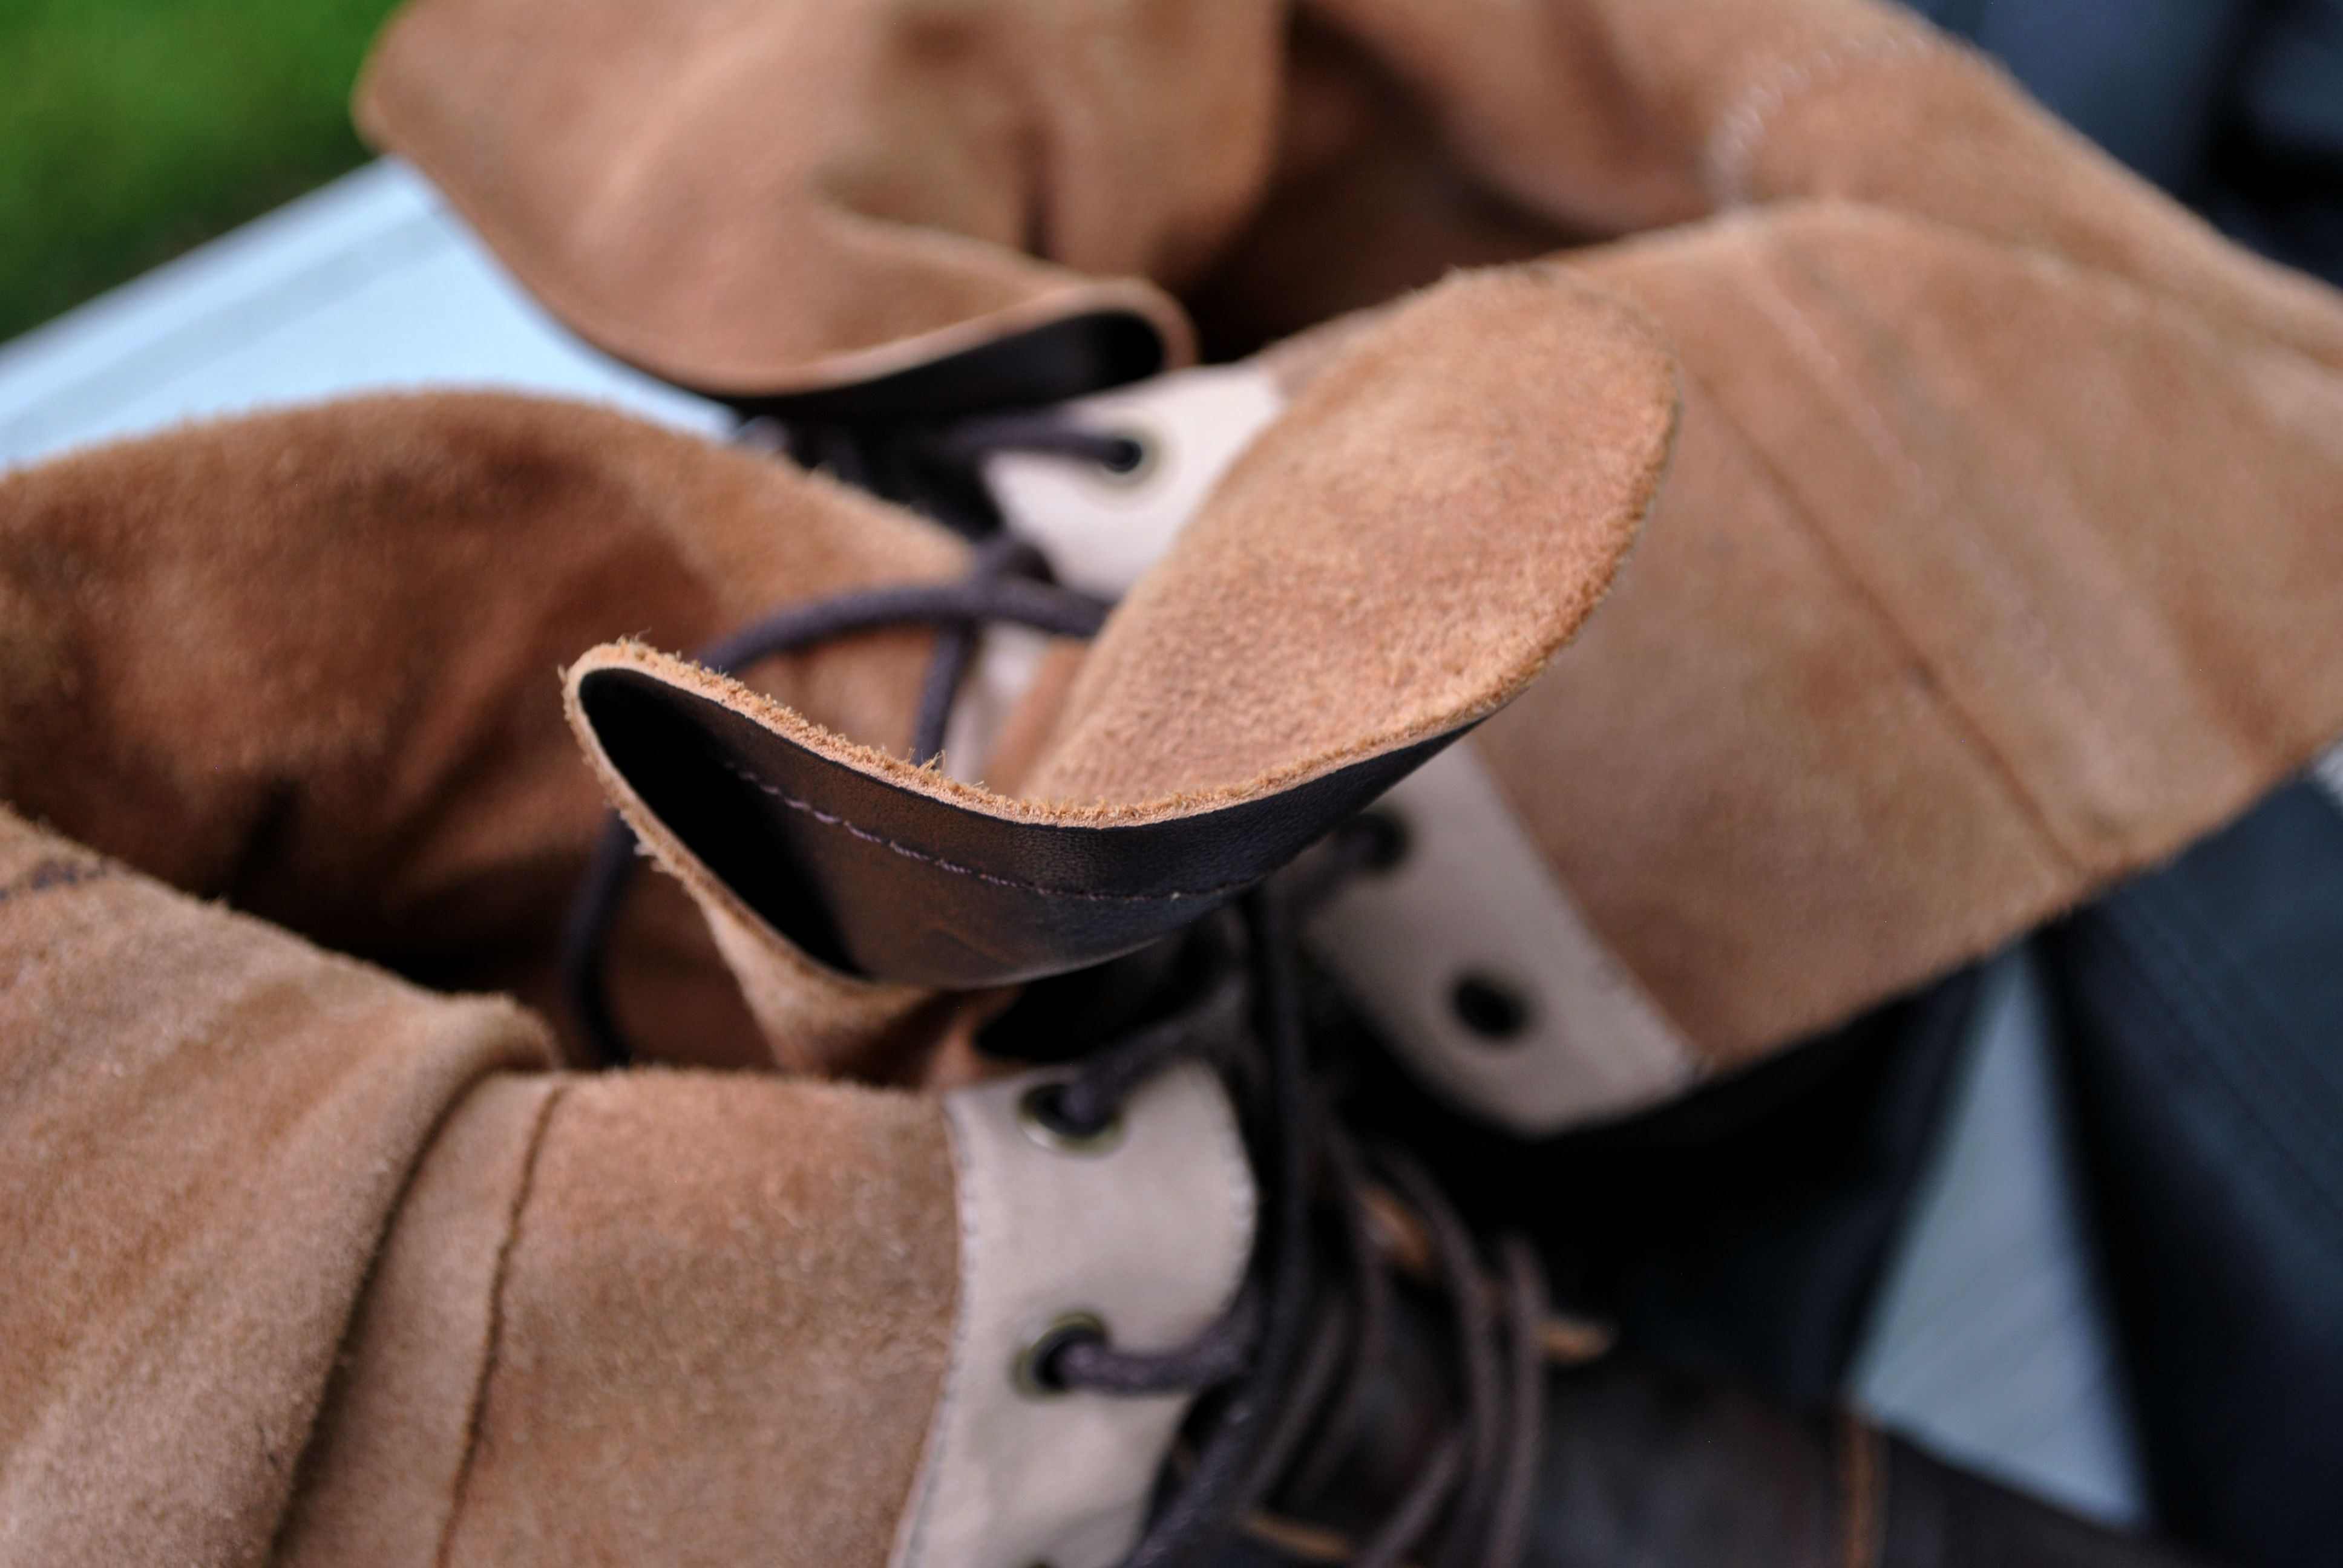 Lovely Get Bad Smells Out Of Leather | Leather, The Ou0027jays And Cleaning